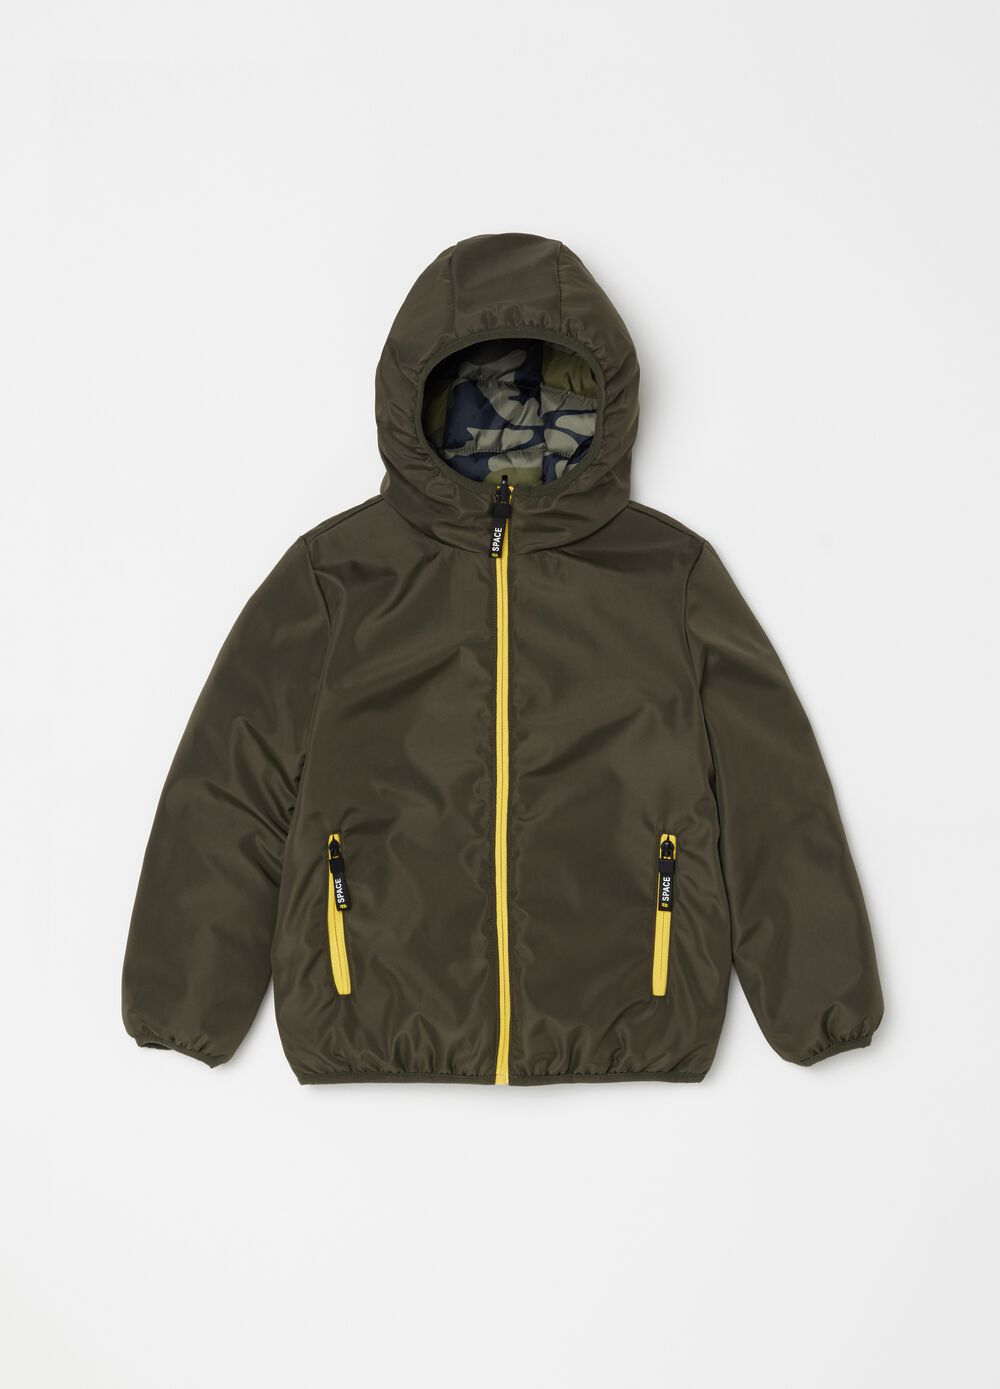 Padded and reversible jacket with zip